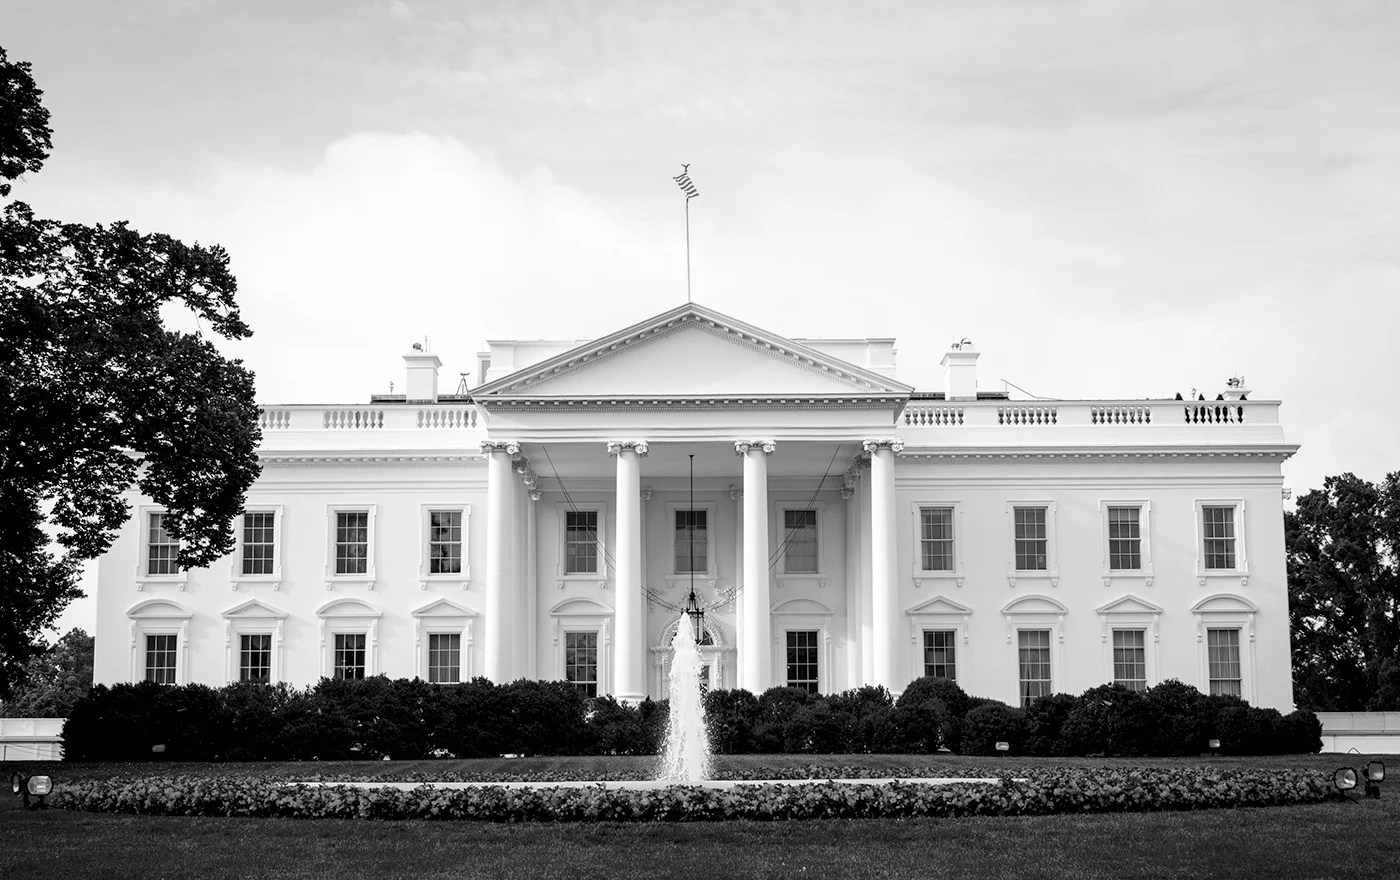 U.S. Executive Order on Cyber Security – What You Need to Know